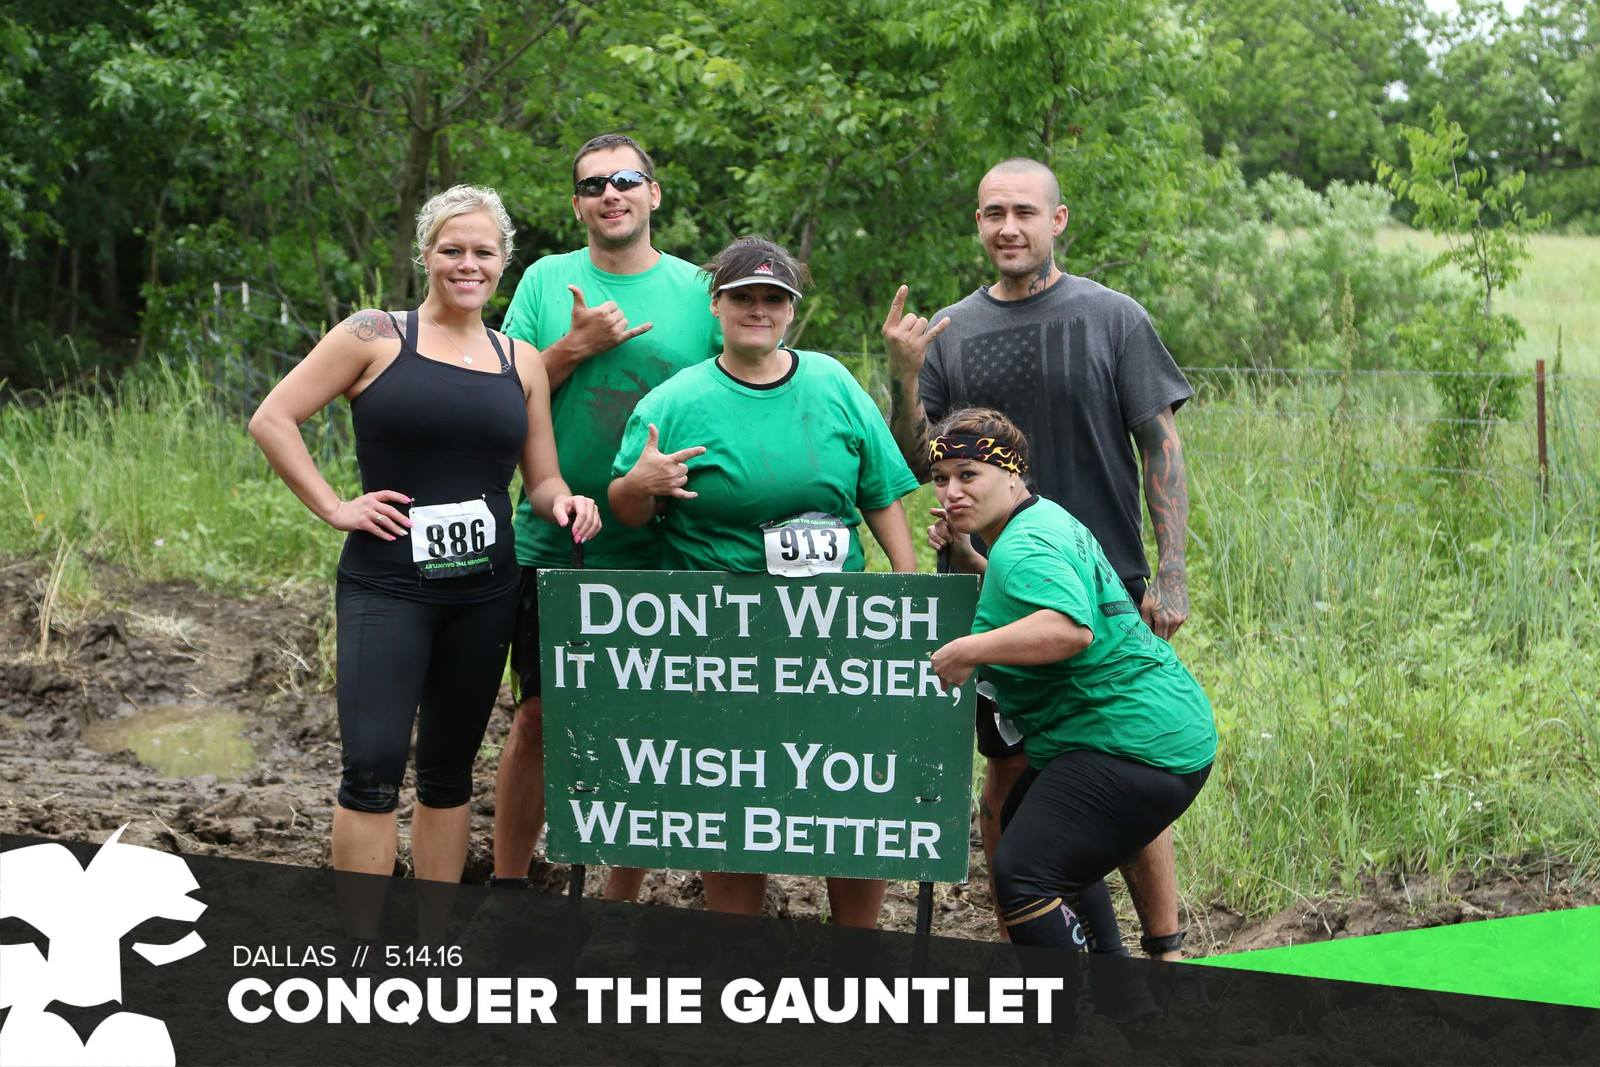 Conquer The Gauntlet Cancels